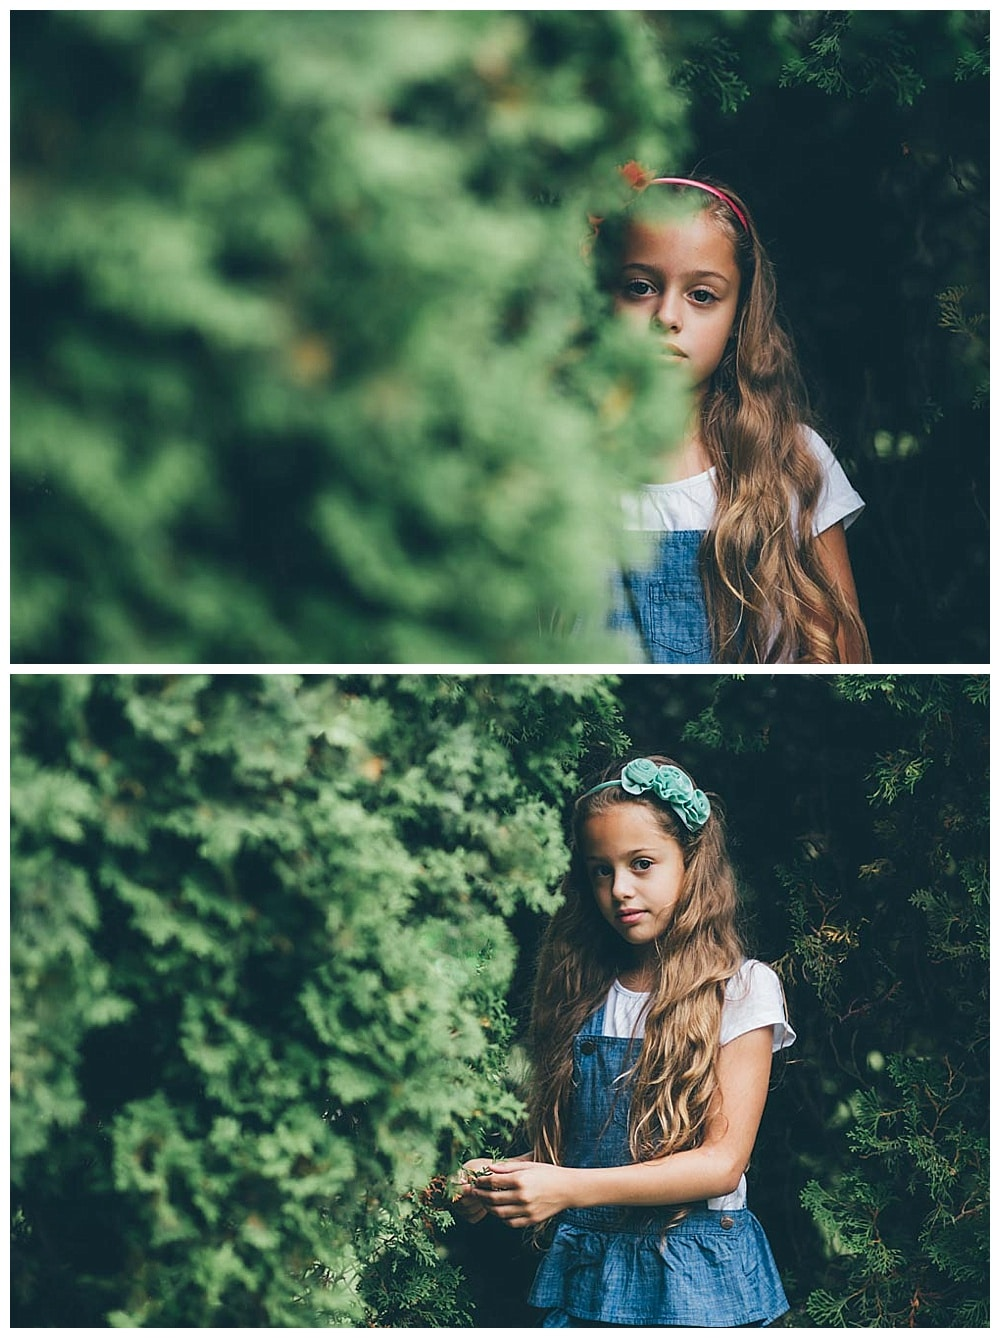 Sisters | Toronto Portrait Session | Melbourne Children Photographer